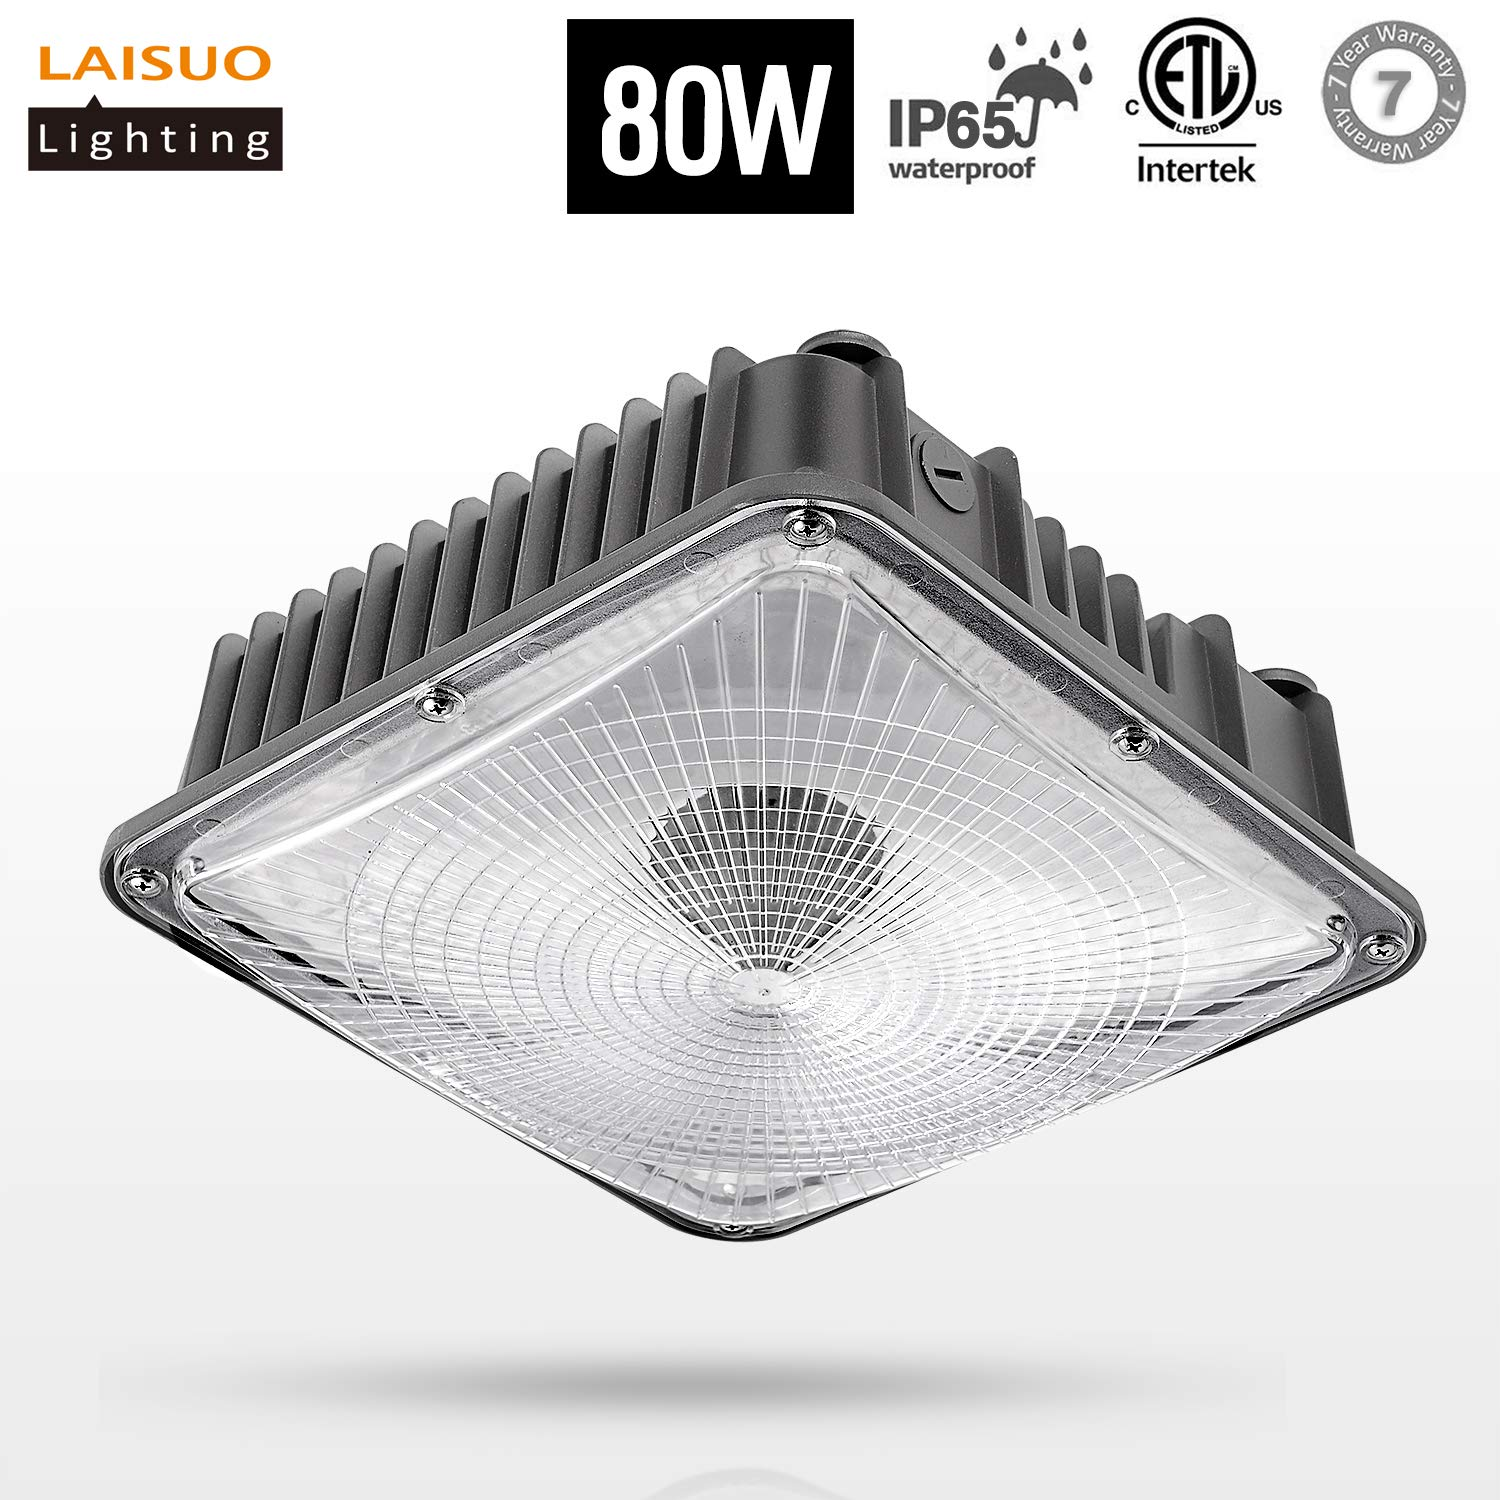 80W LED Canopy Light (250W Hps/MH Bulb Replacement),Isolated Power 5000K Daylight White,9200 Lumens, IP65 Waterproof for Playground, Gym, Warehouse, Garage, Backyard, ETL Listed